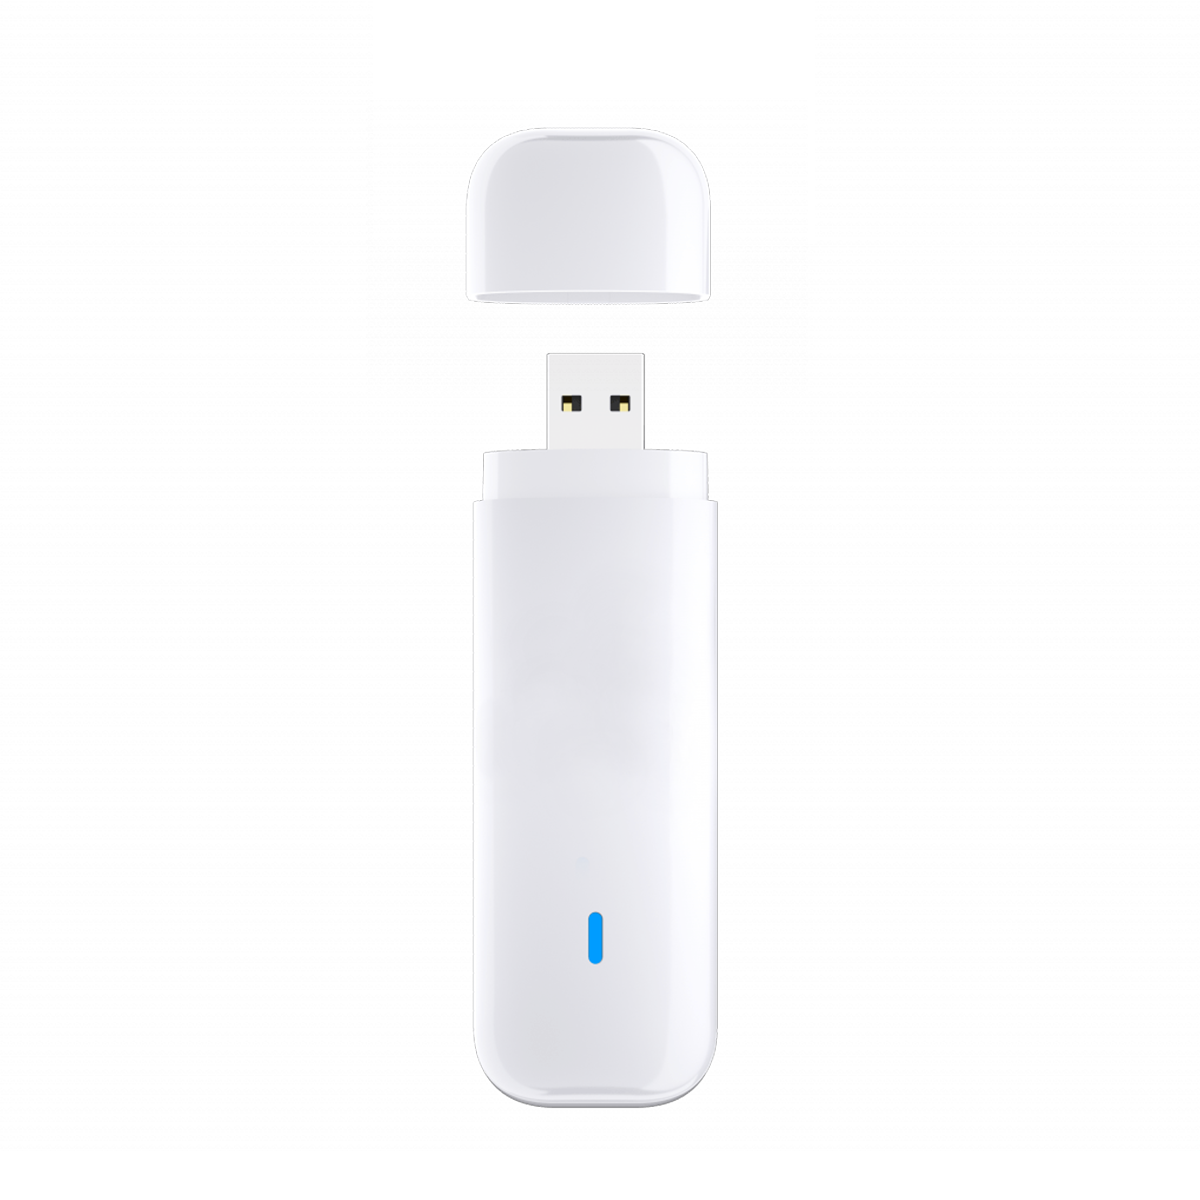 wwan1363 USB WiFi Modem Dongle